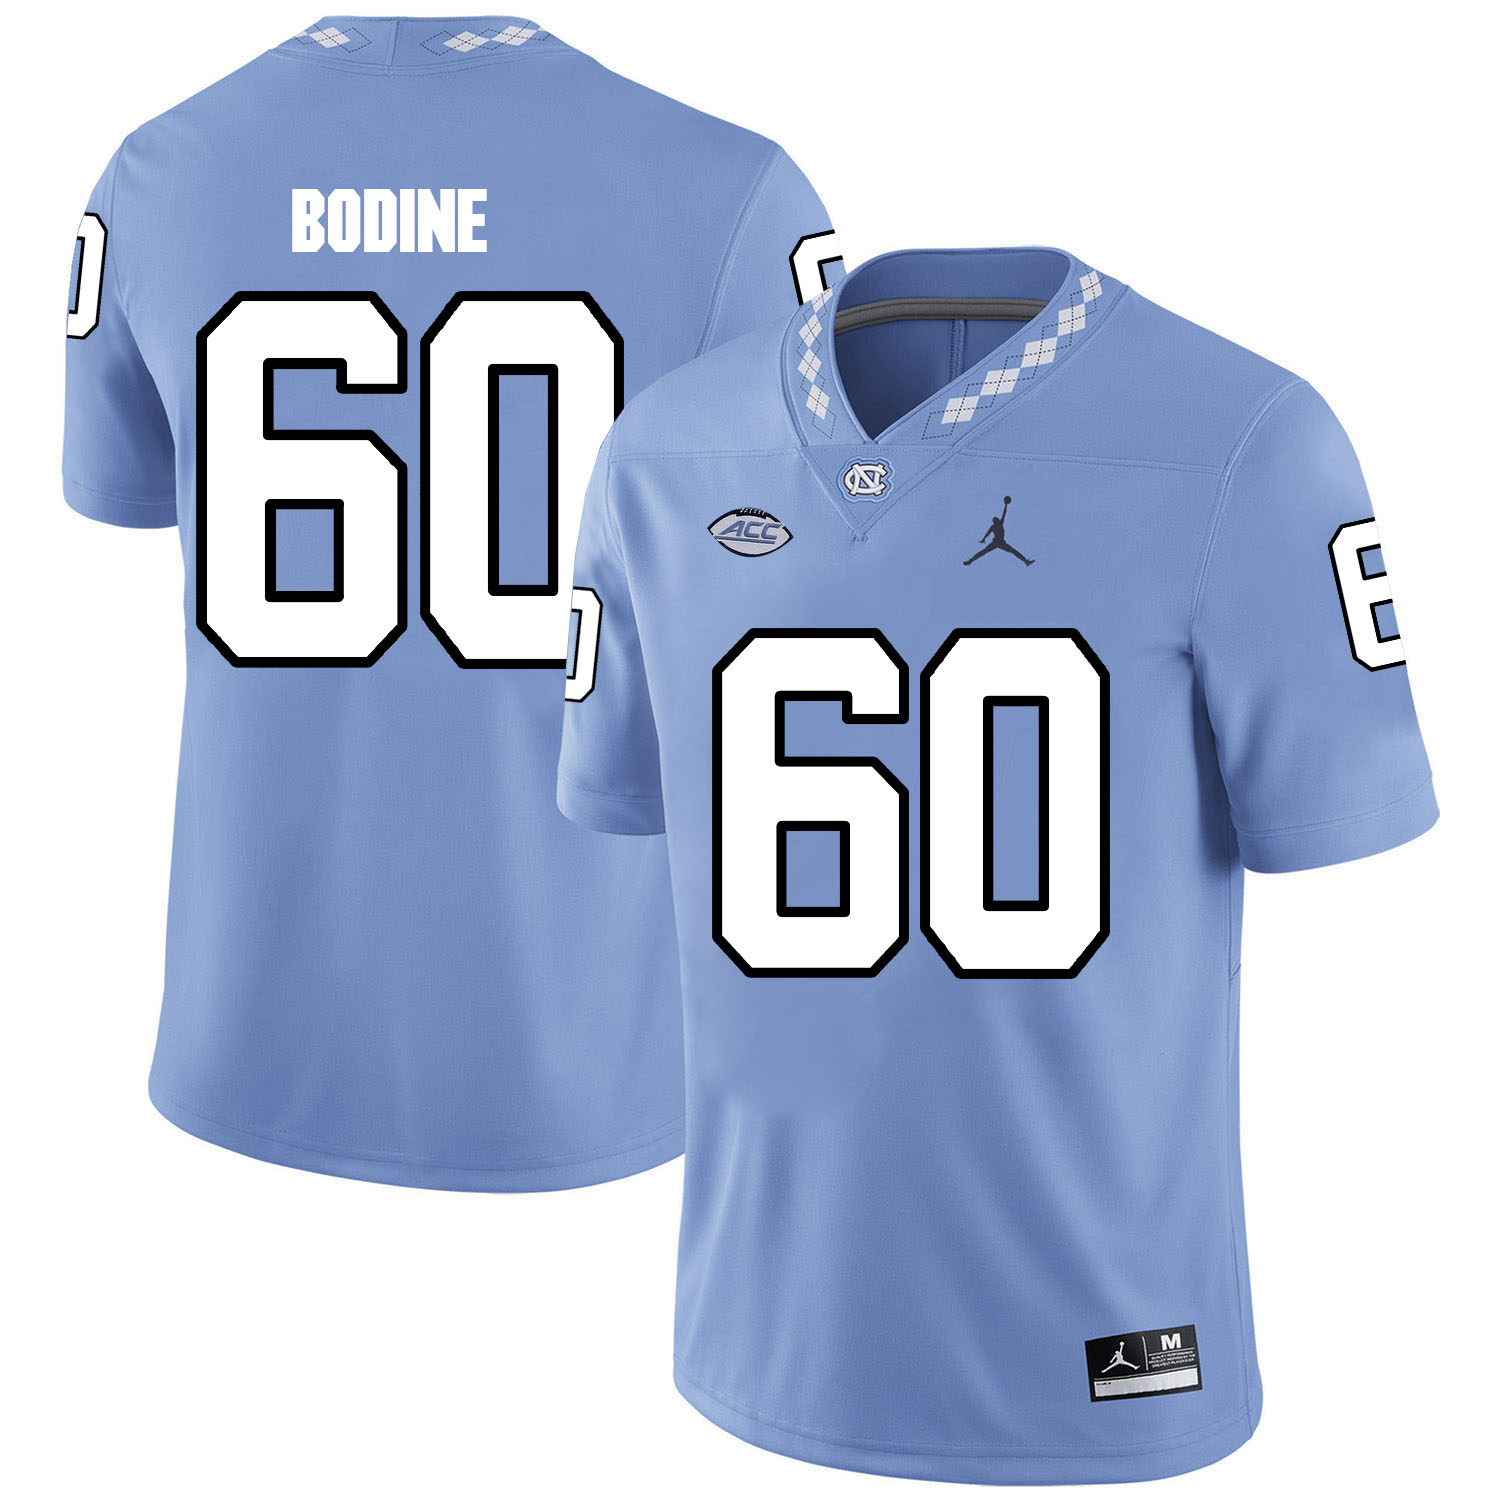 North Carolina Tar Heels 60 Russell Bodine Blue College Football Jersey